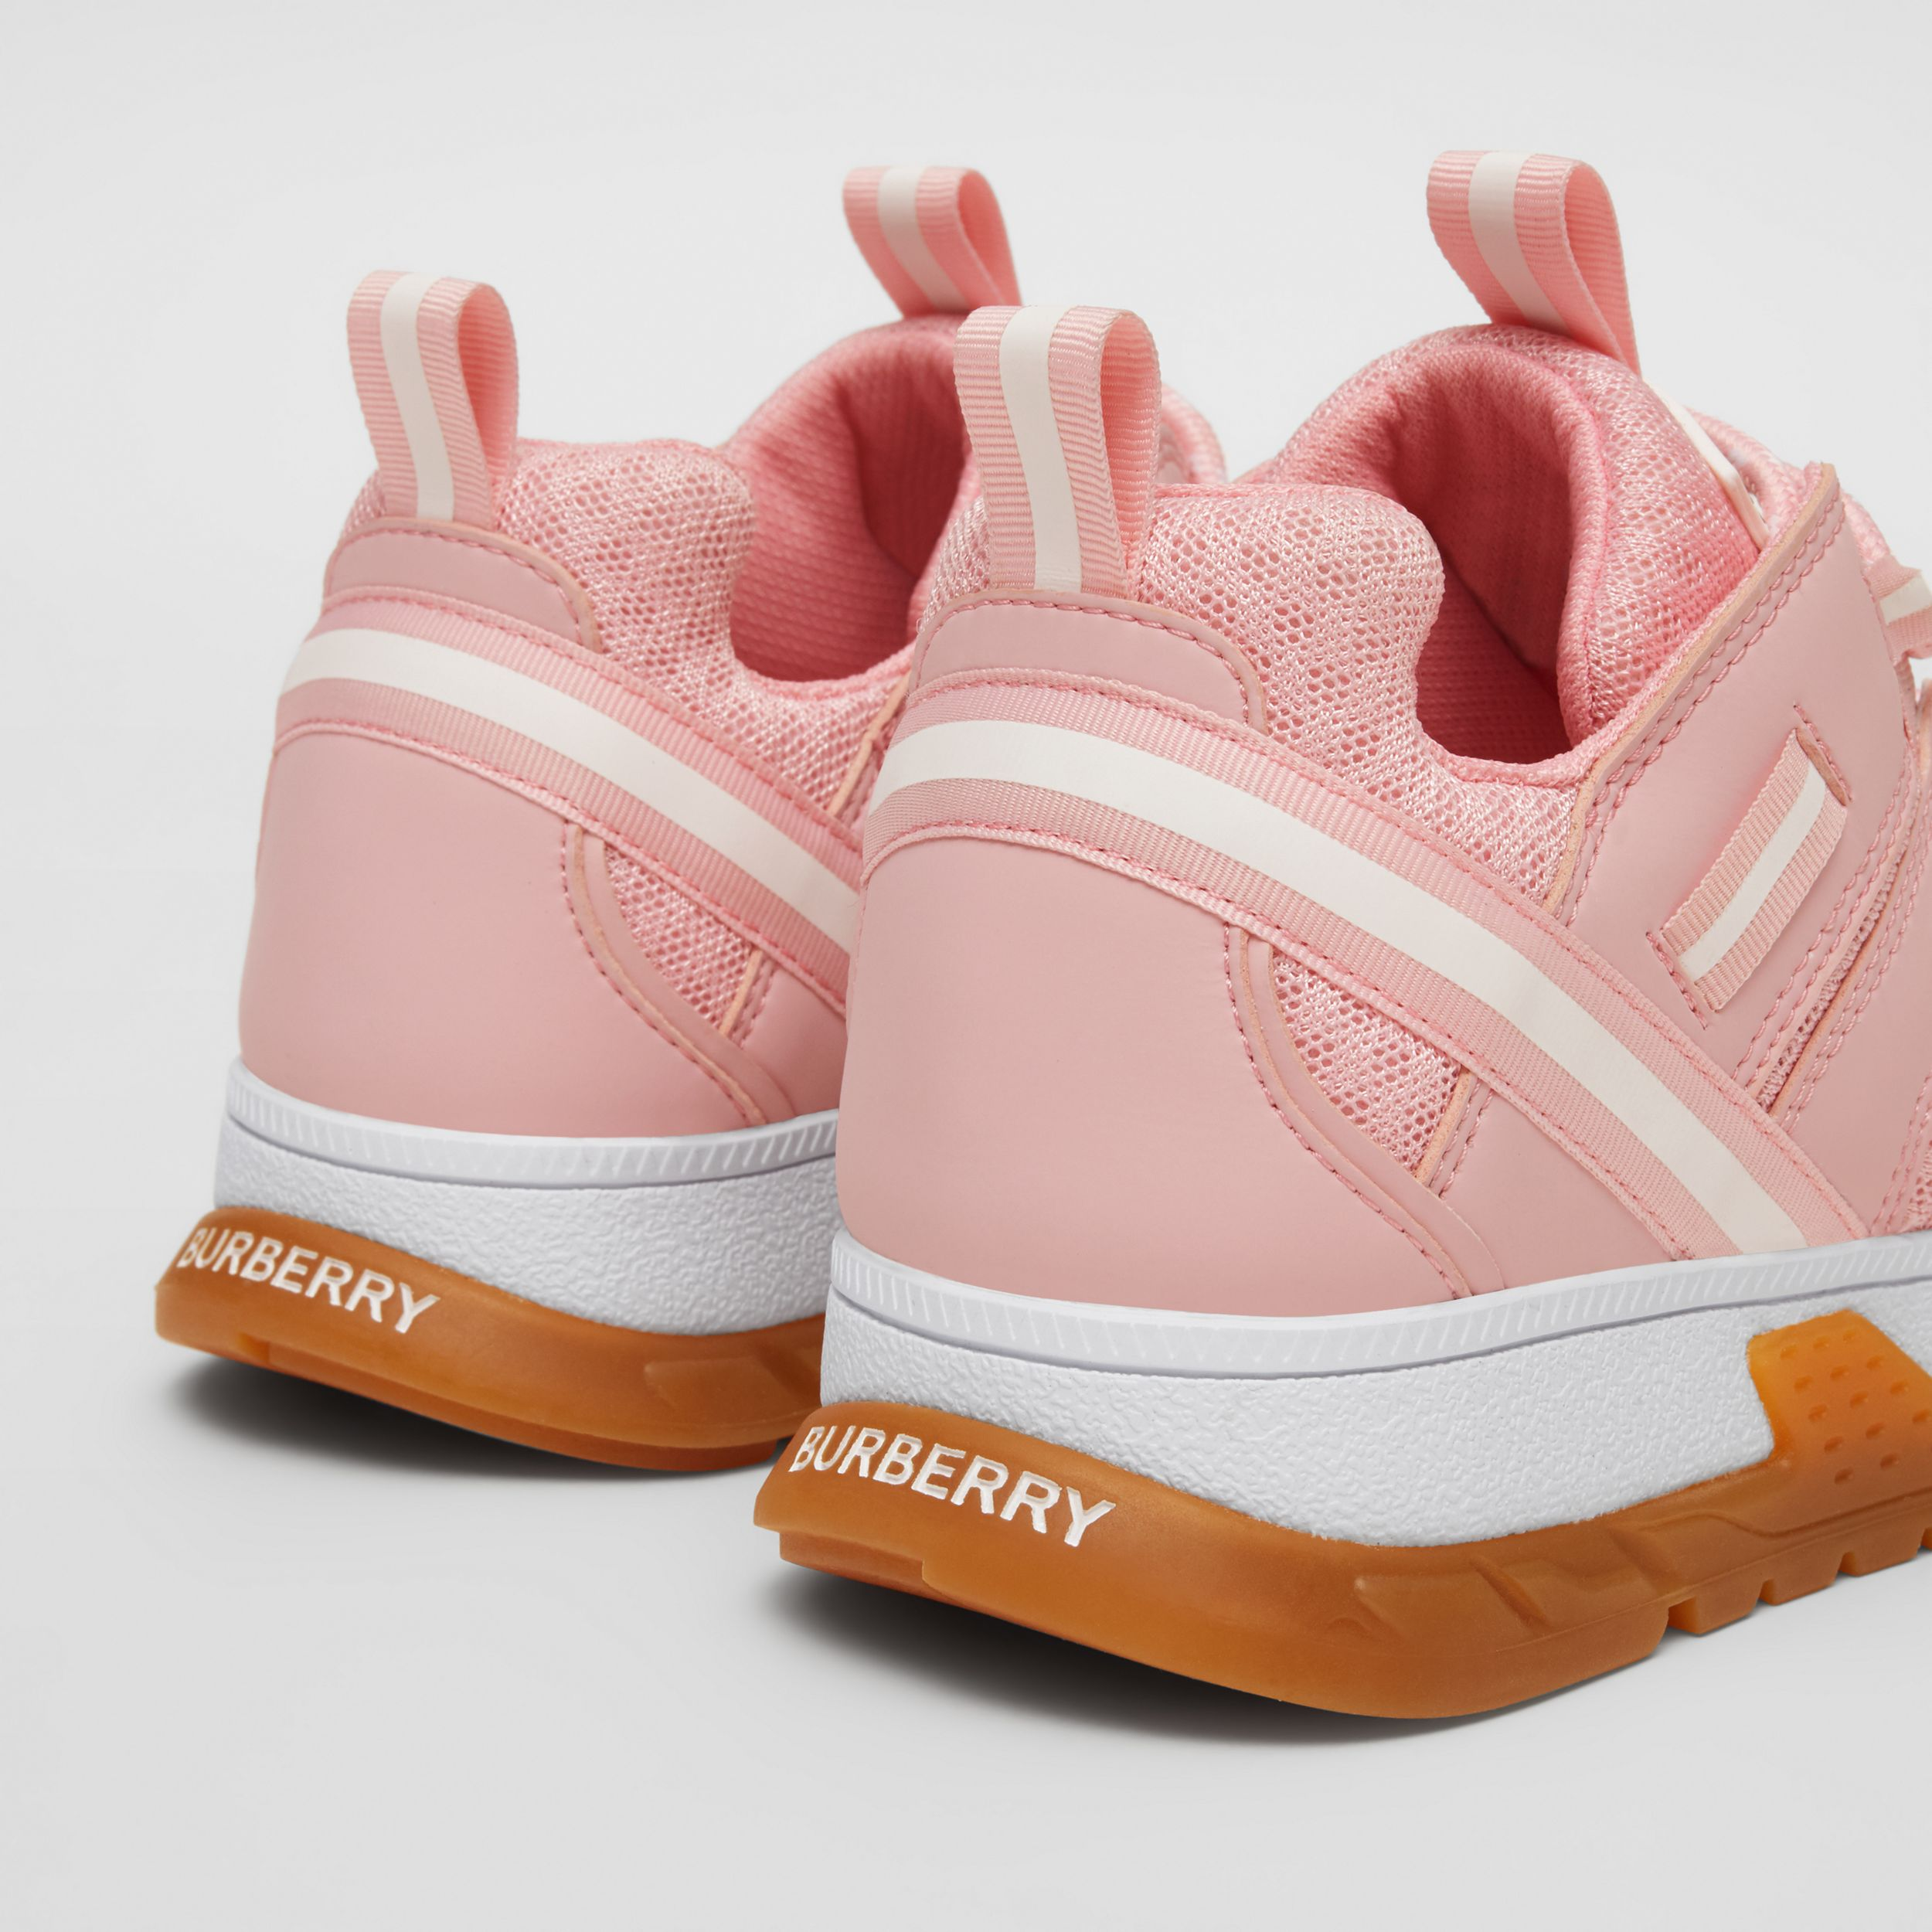 Nylon and Mesh Union Sneakers in Candy Pink - Children | Burberry Canada - 2